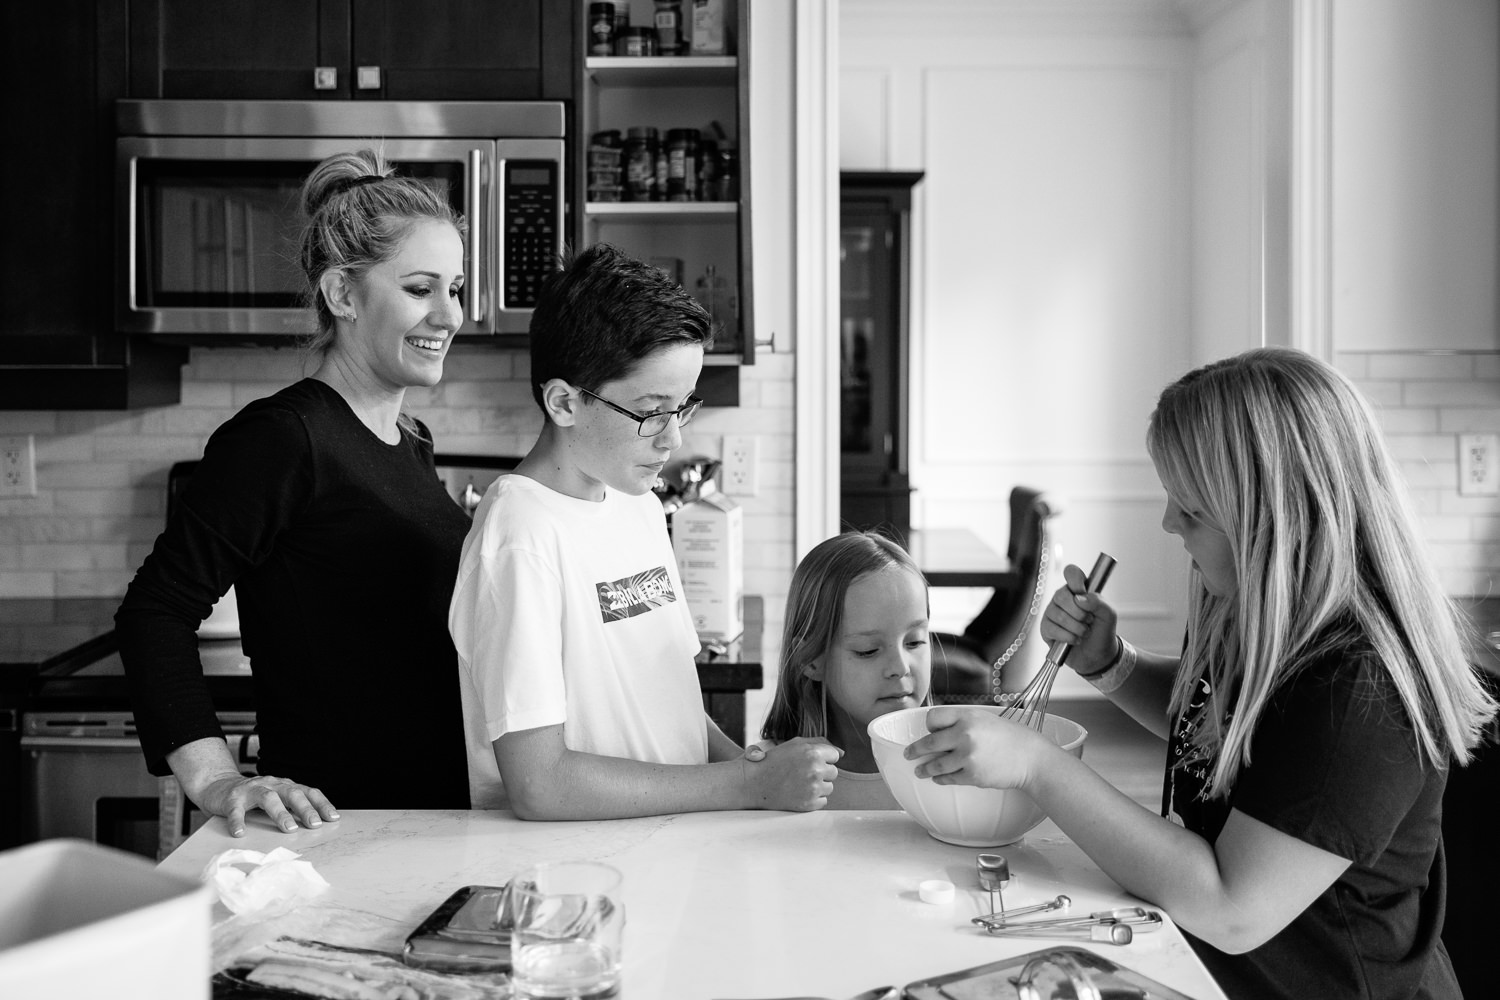 3 children standing at kitchen island mixing pancake batter for family brunch, 8 and 10 year old girls, mom standing behind 13 year old boy watching - Markham Lifestyle Photography